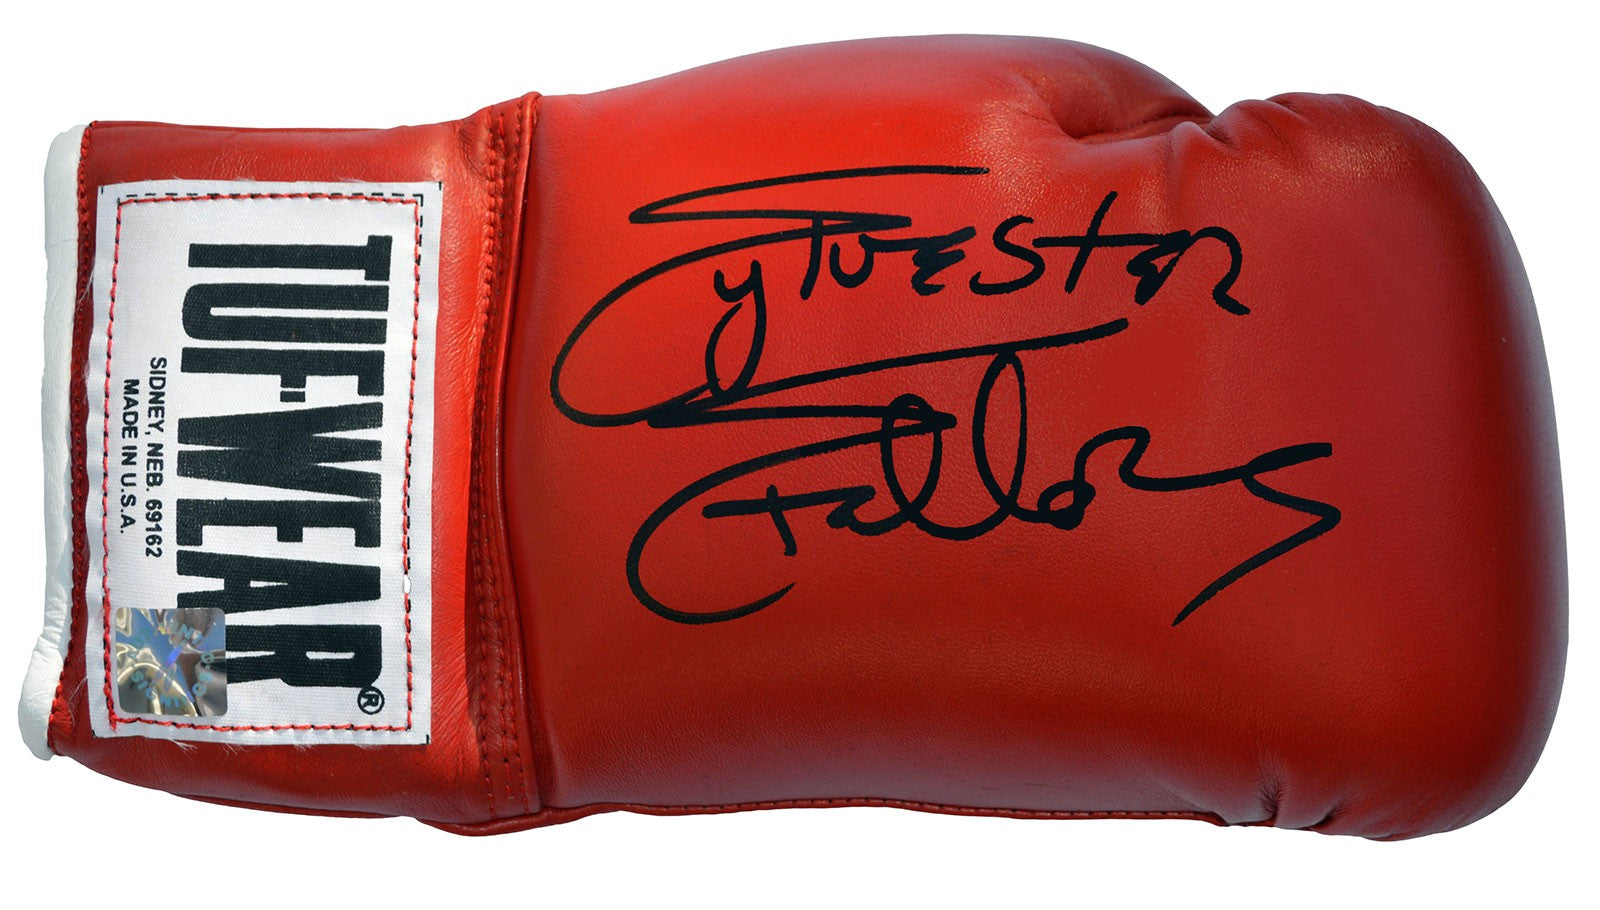 Sylvester Stallone Signed Rocky Boxing Glove Picture - Magical Emporium